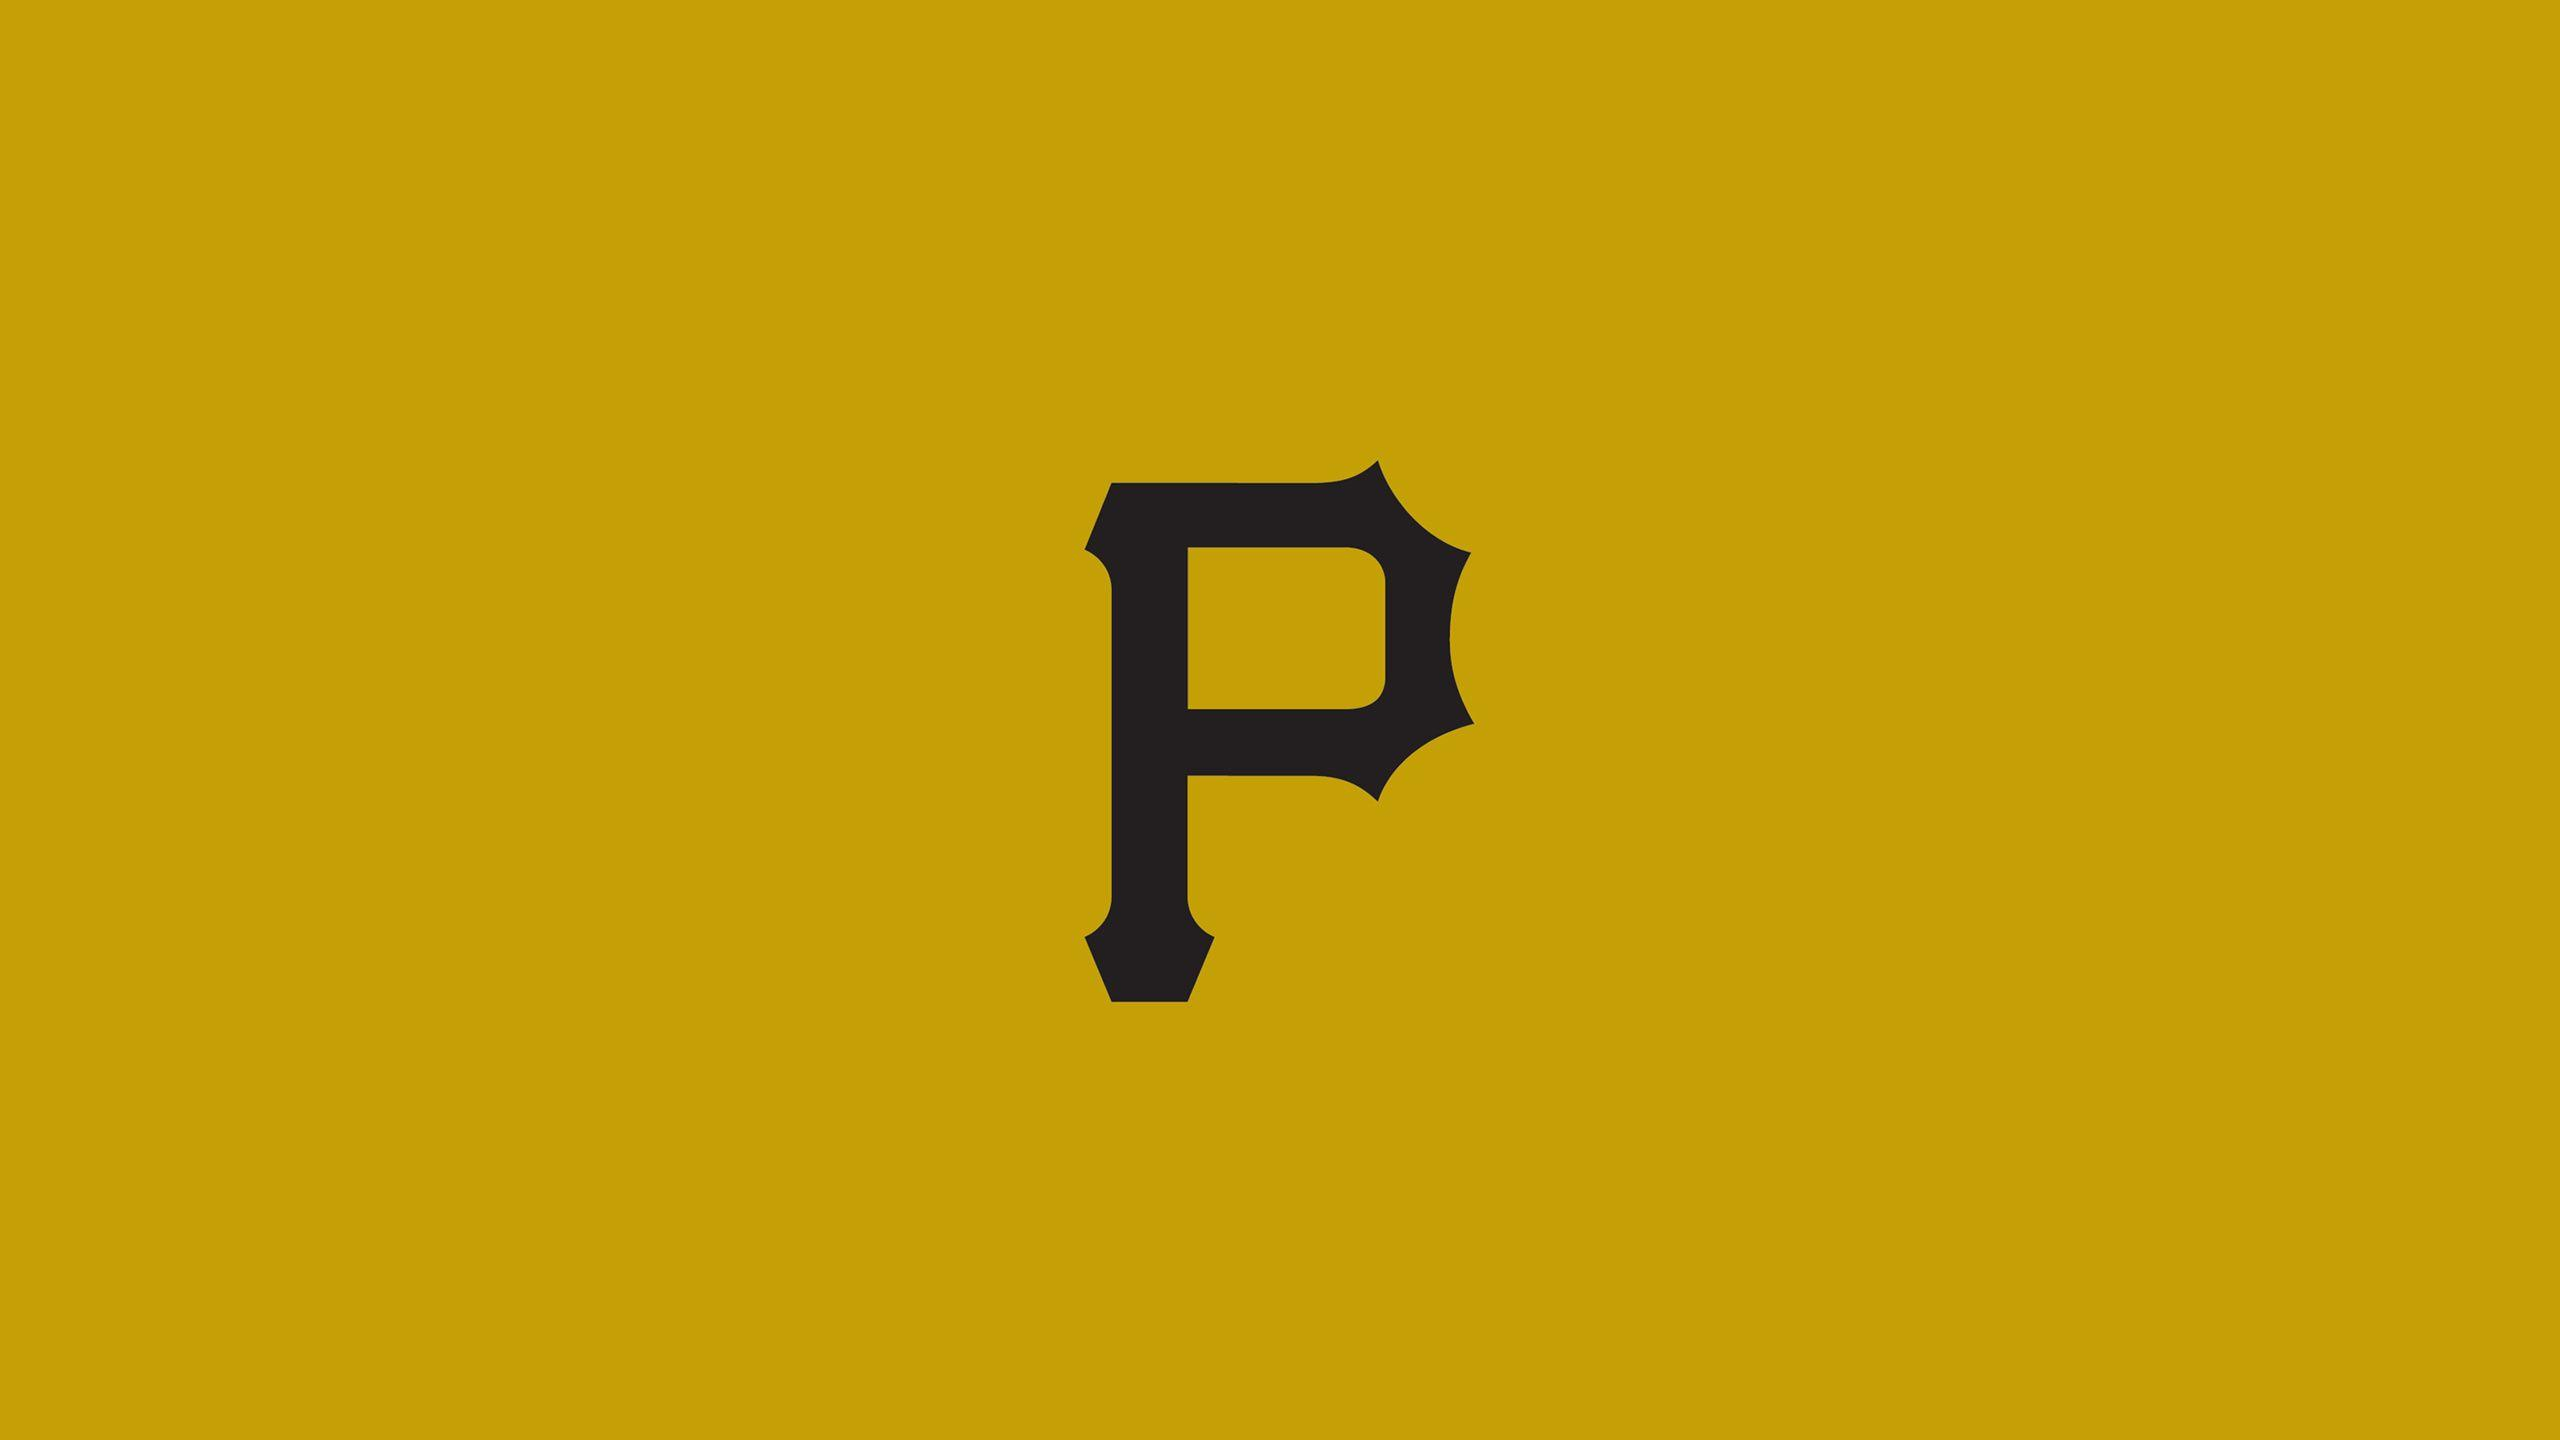 Free Pittsburgh Pirates Wallpaper, Fine HDQ Pittsburgh Pirates ...